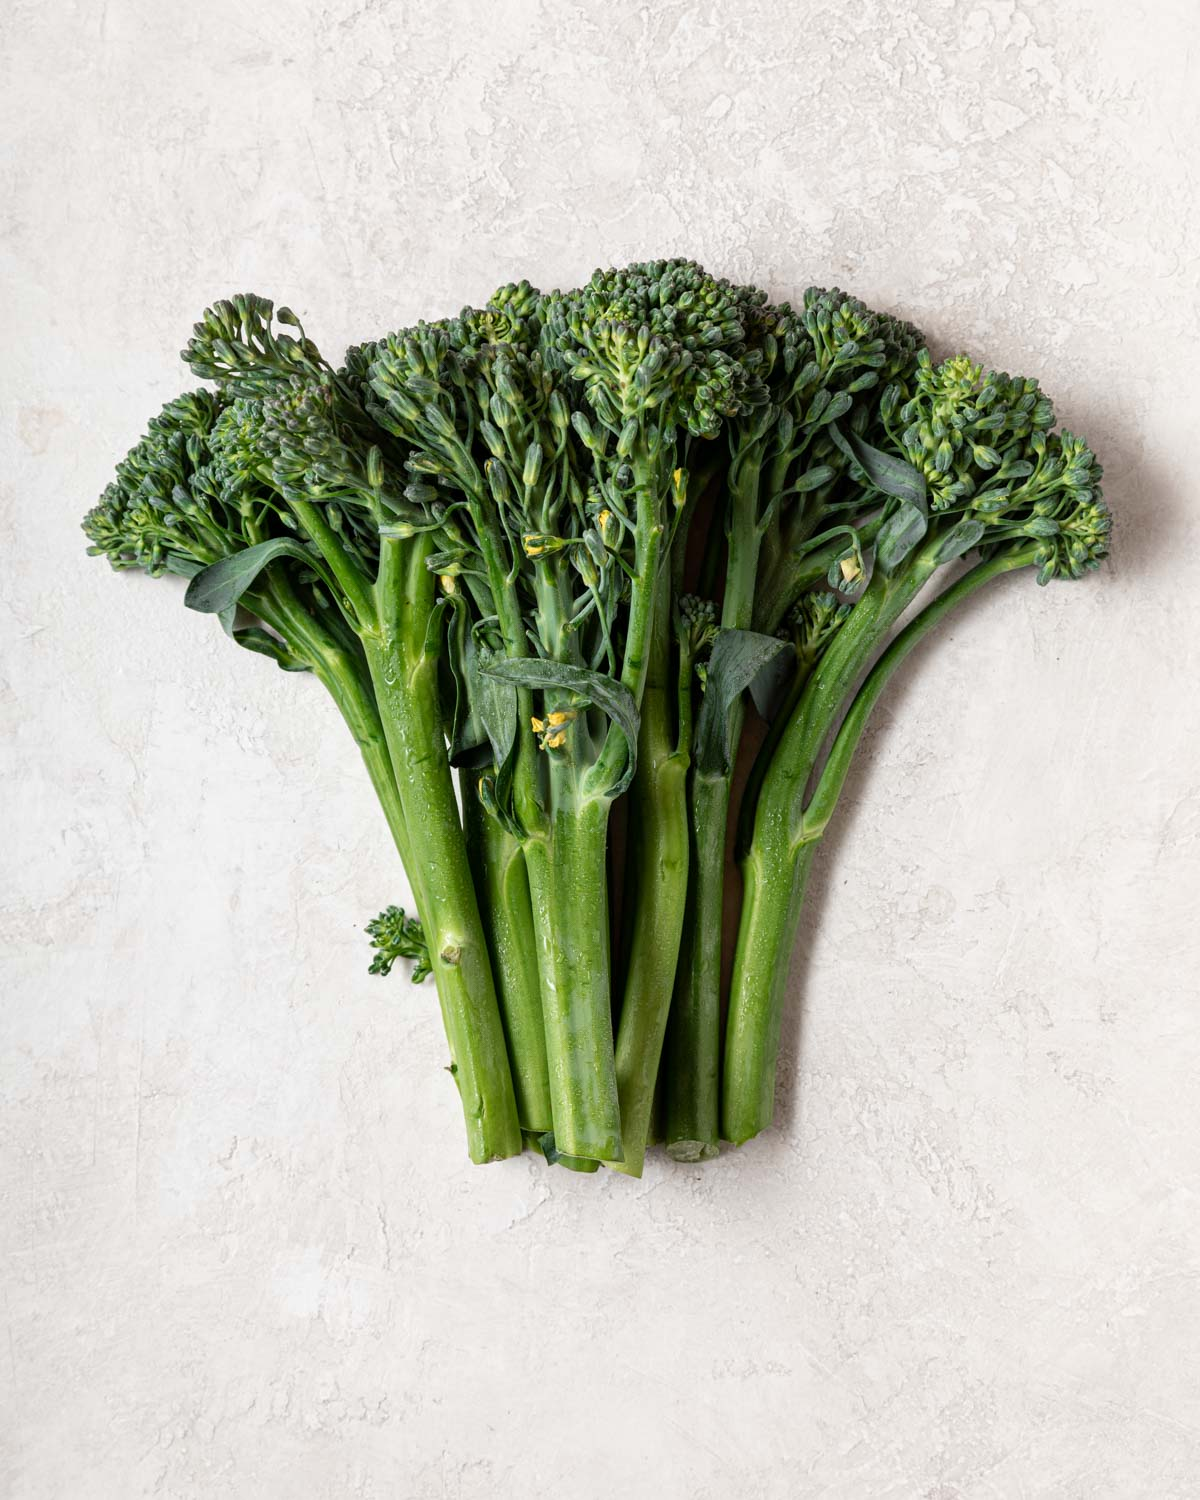 A bunch of broccolini sits on a neutral background.